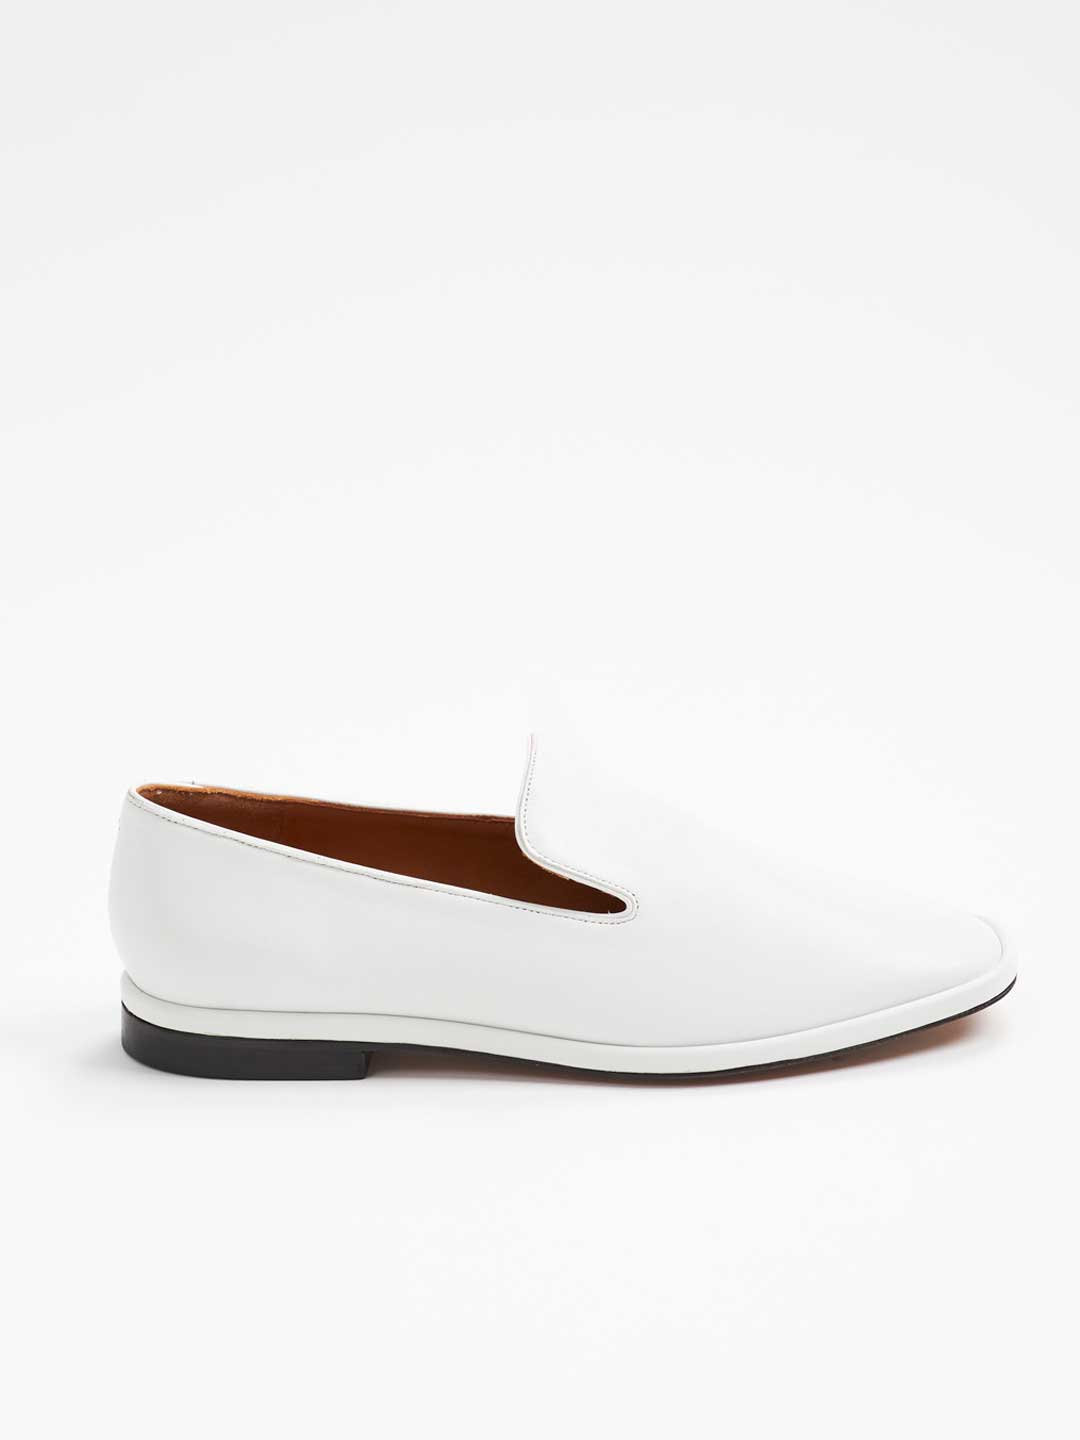 OLYMPIA Smooth Leather Slip-on Shoes - White